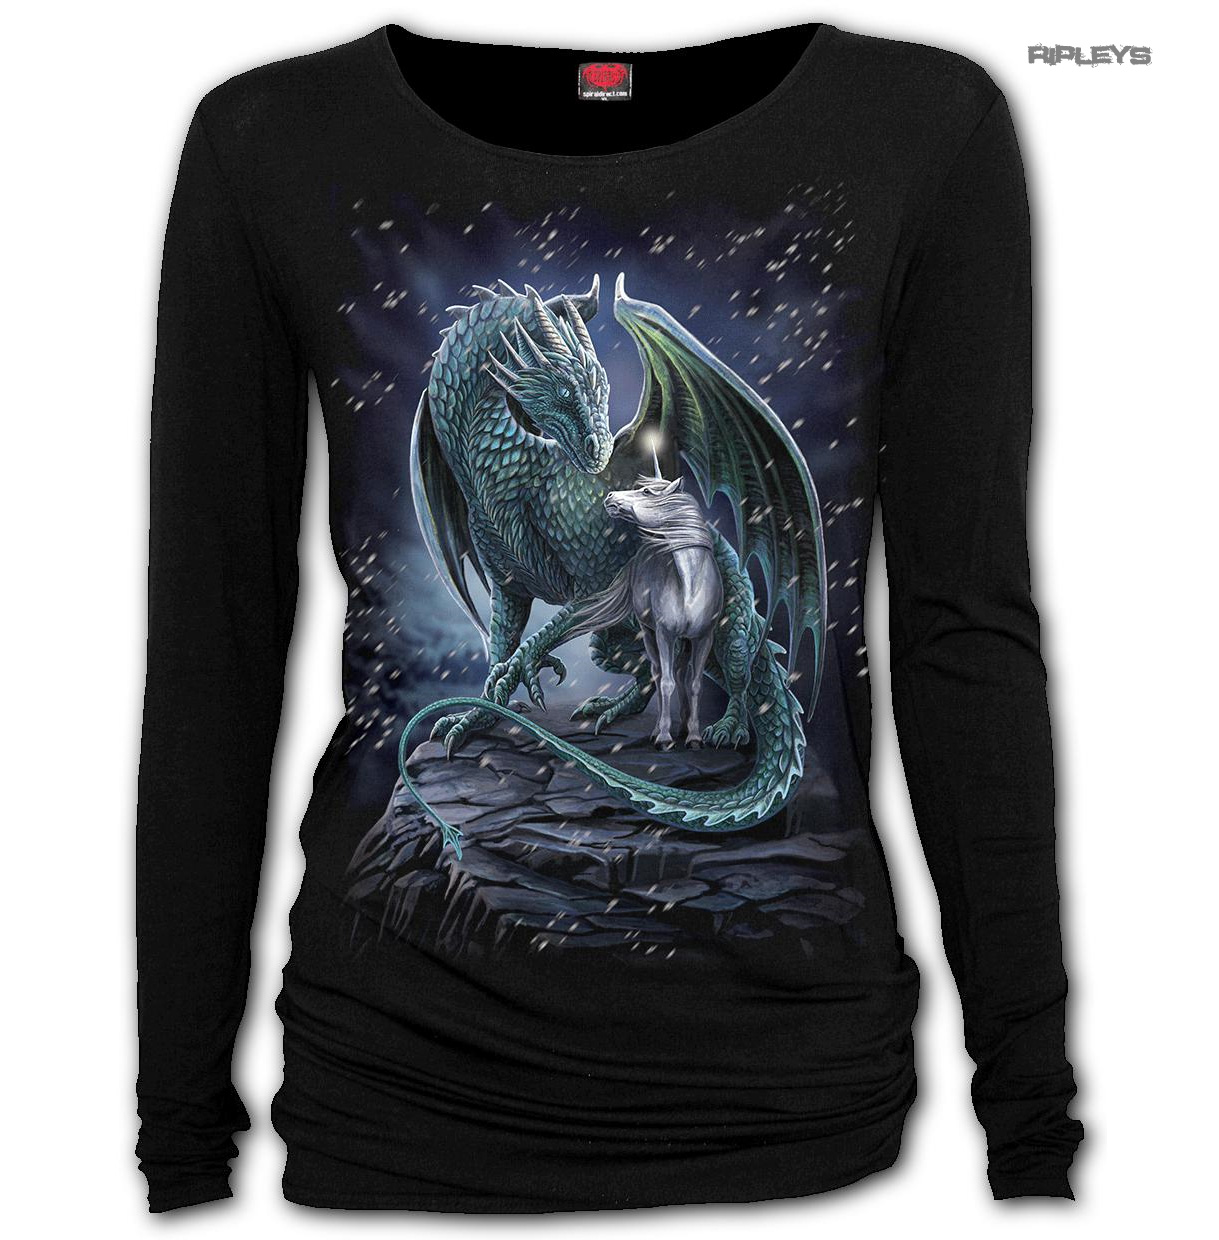 Spiral-Ladies-Gothic-Unicorn-Dragon-PROTECTOR-OF-MAGIC-L-Sleeve-Top-All-Sizes thumbnail 10